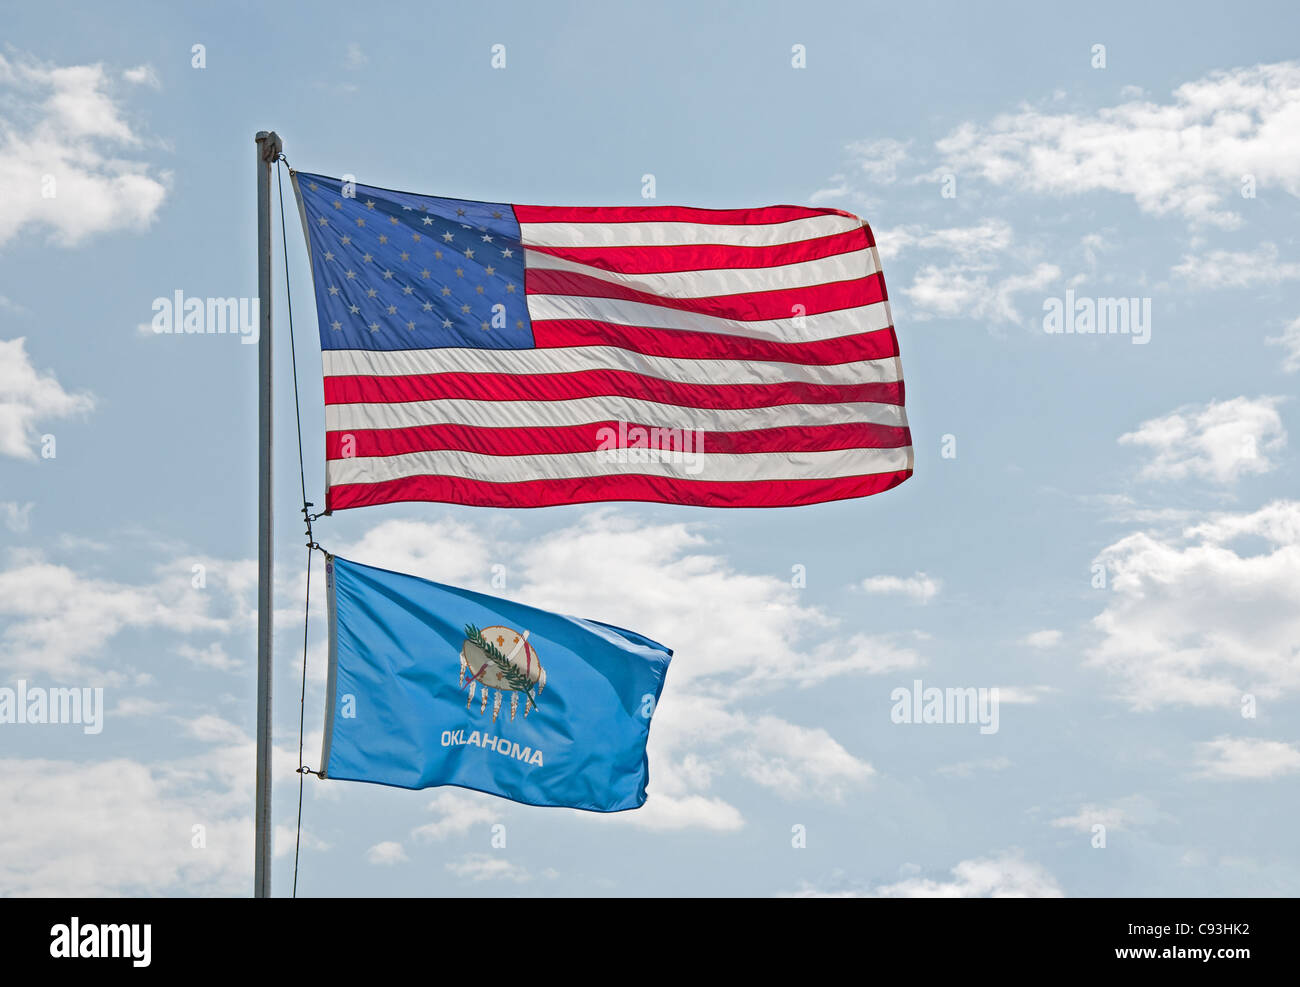 US and Oklahoma flags - Stock Image